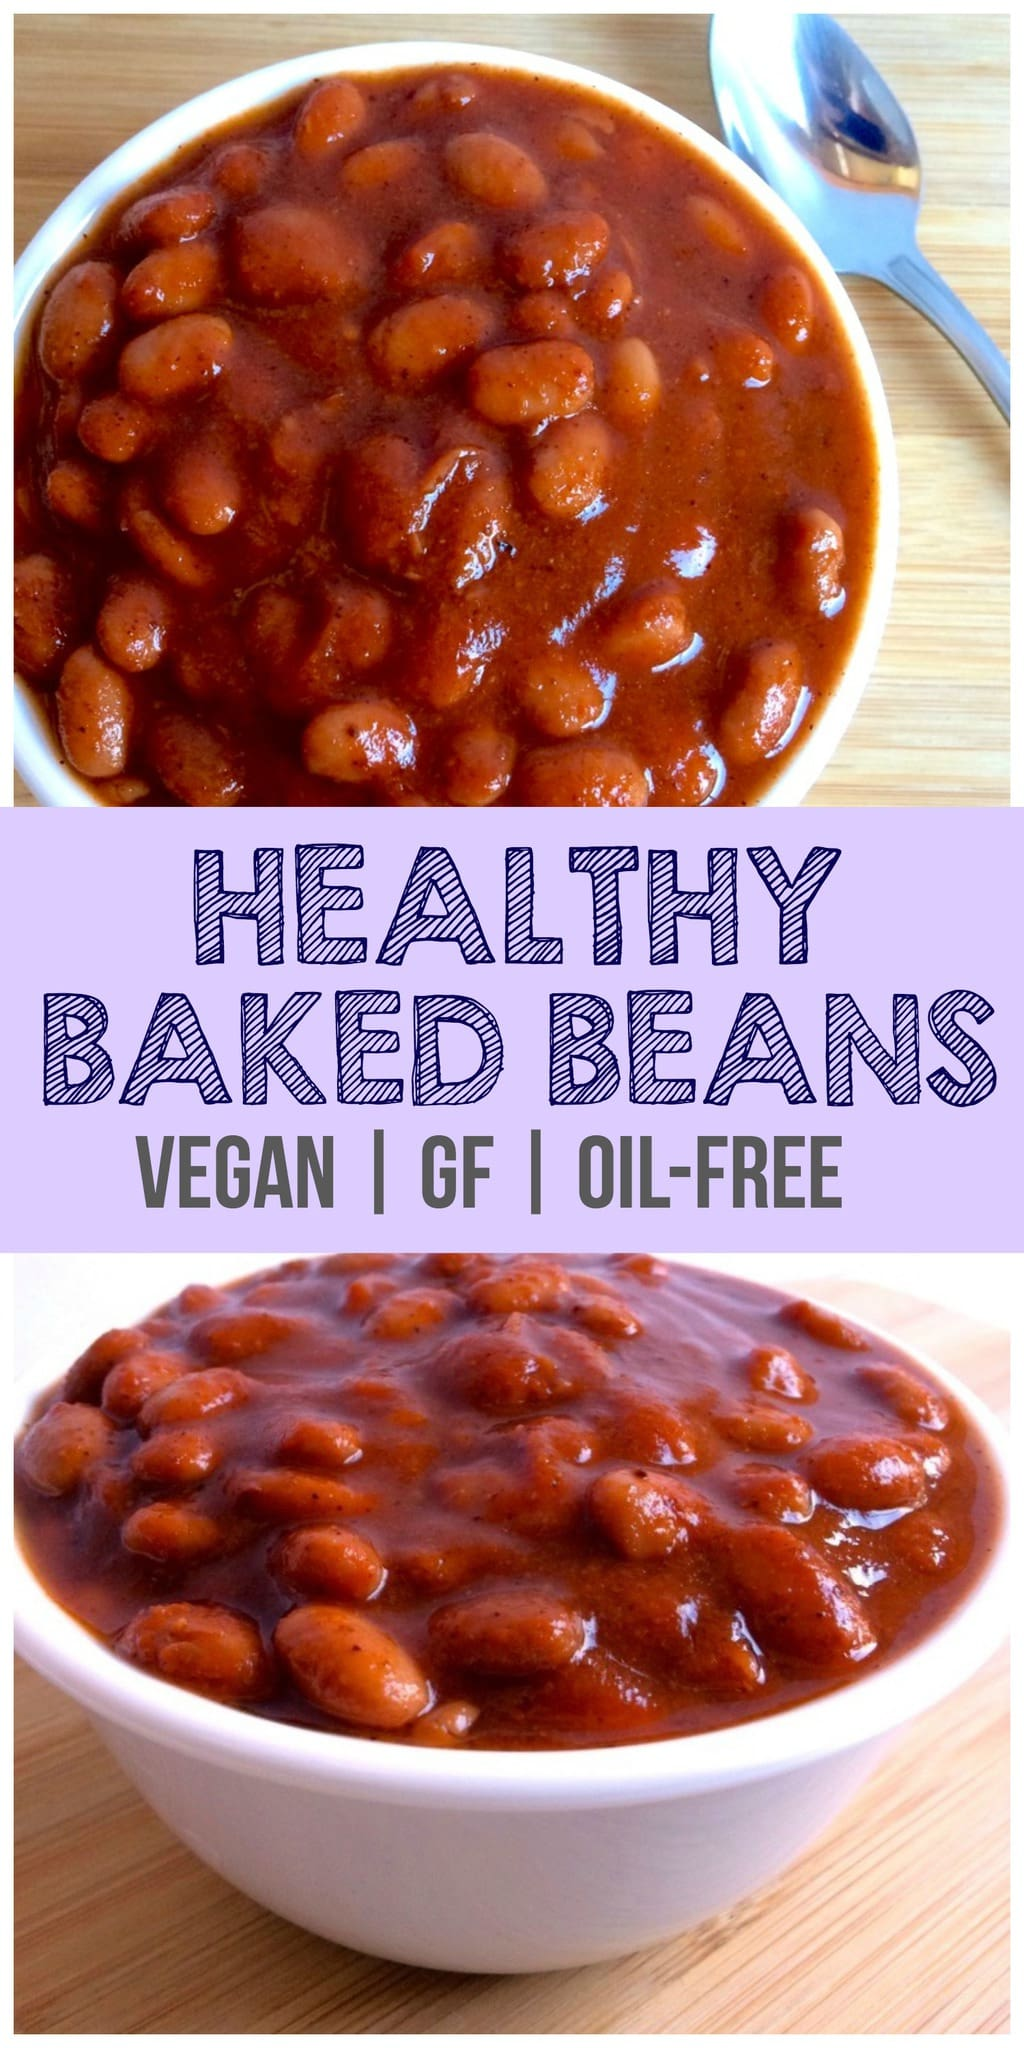 These Vegan Baked Beans are absolutely delicious!! They taste just like Bush's, but are way better for you. They are gluten-free, low-calorie, low-carb, dairy-free, and sugar-free. Sure to be loved by the whole family!